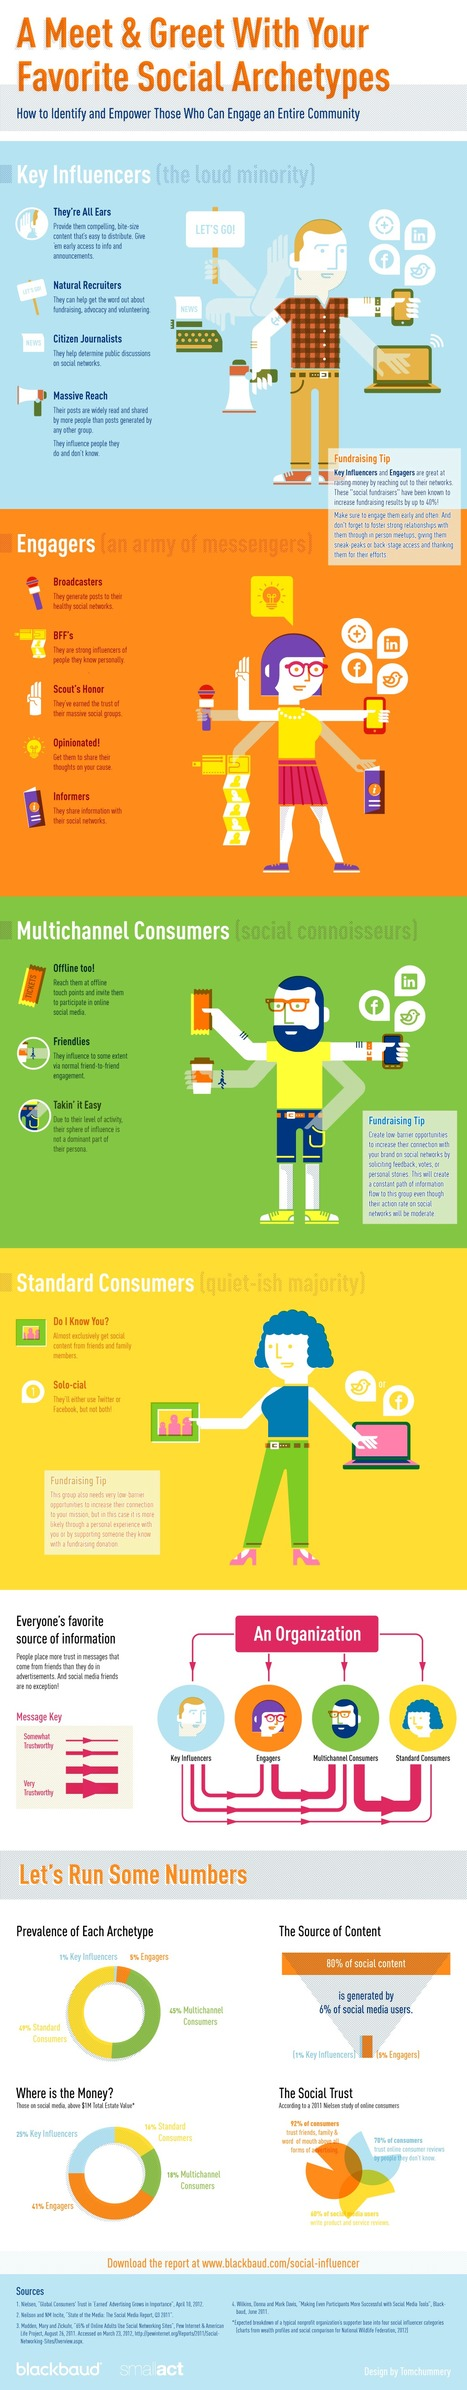 How to Understand, Identify & Engage with Social Influencers [Infographic] | Educational Use of Social Media | Scoop.it